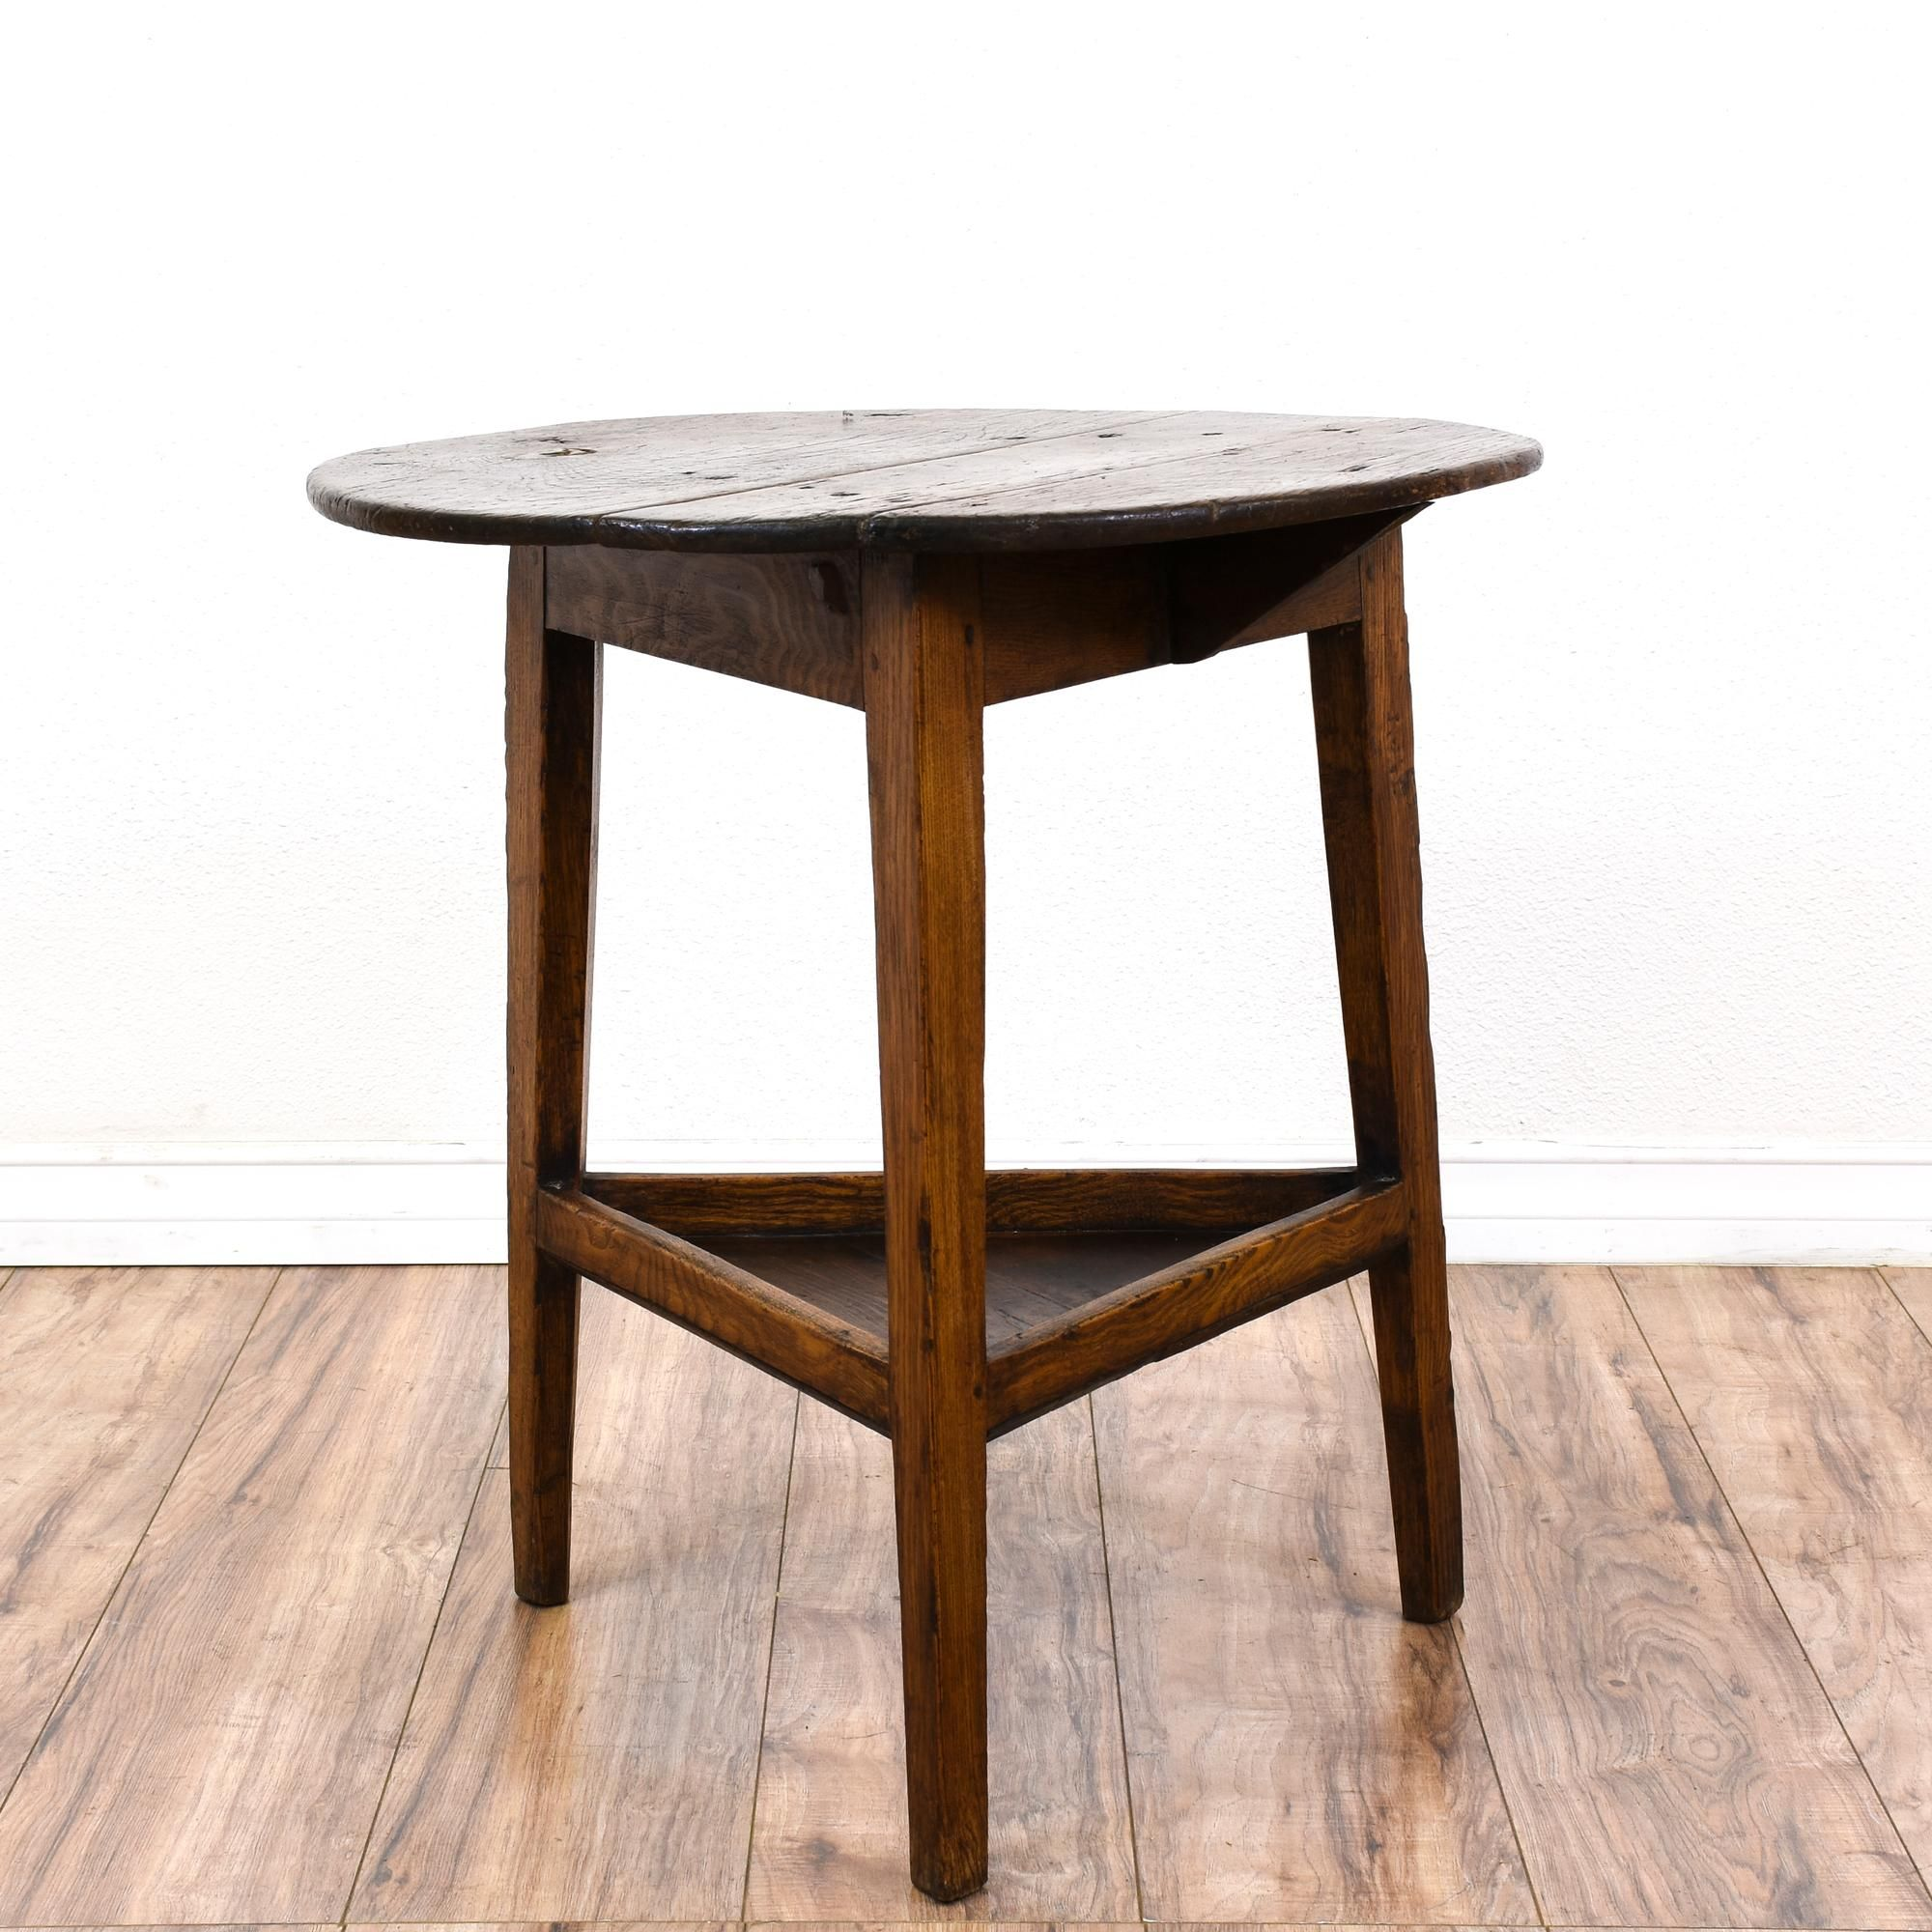 This rustic 2 tiered end table is featured in a solid wood with a distressed oak finish this farmhouse chic side table is in good condition with a round